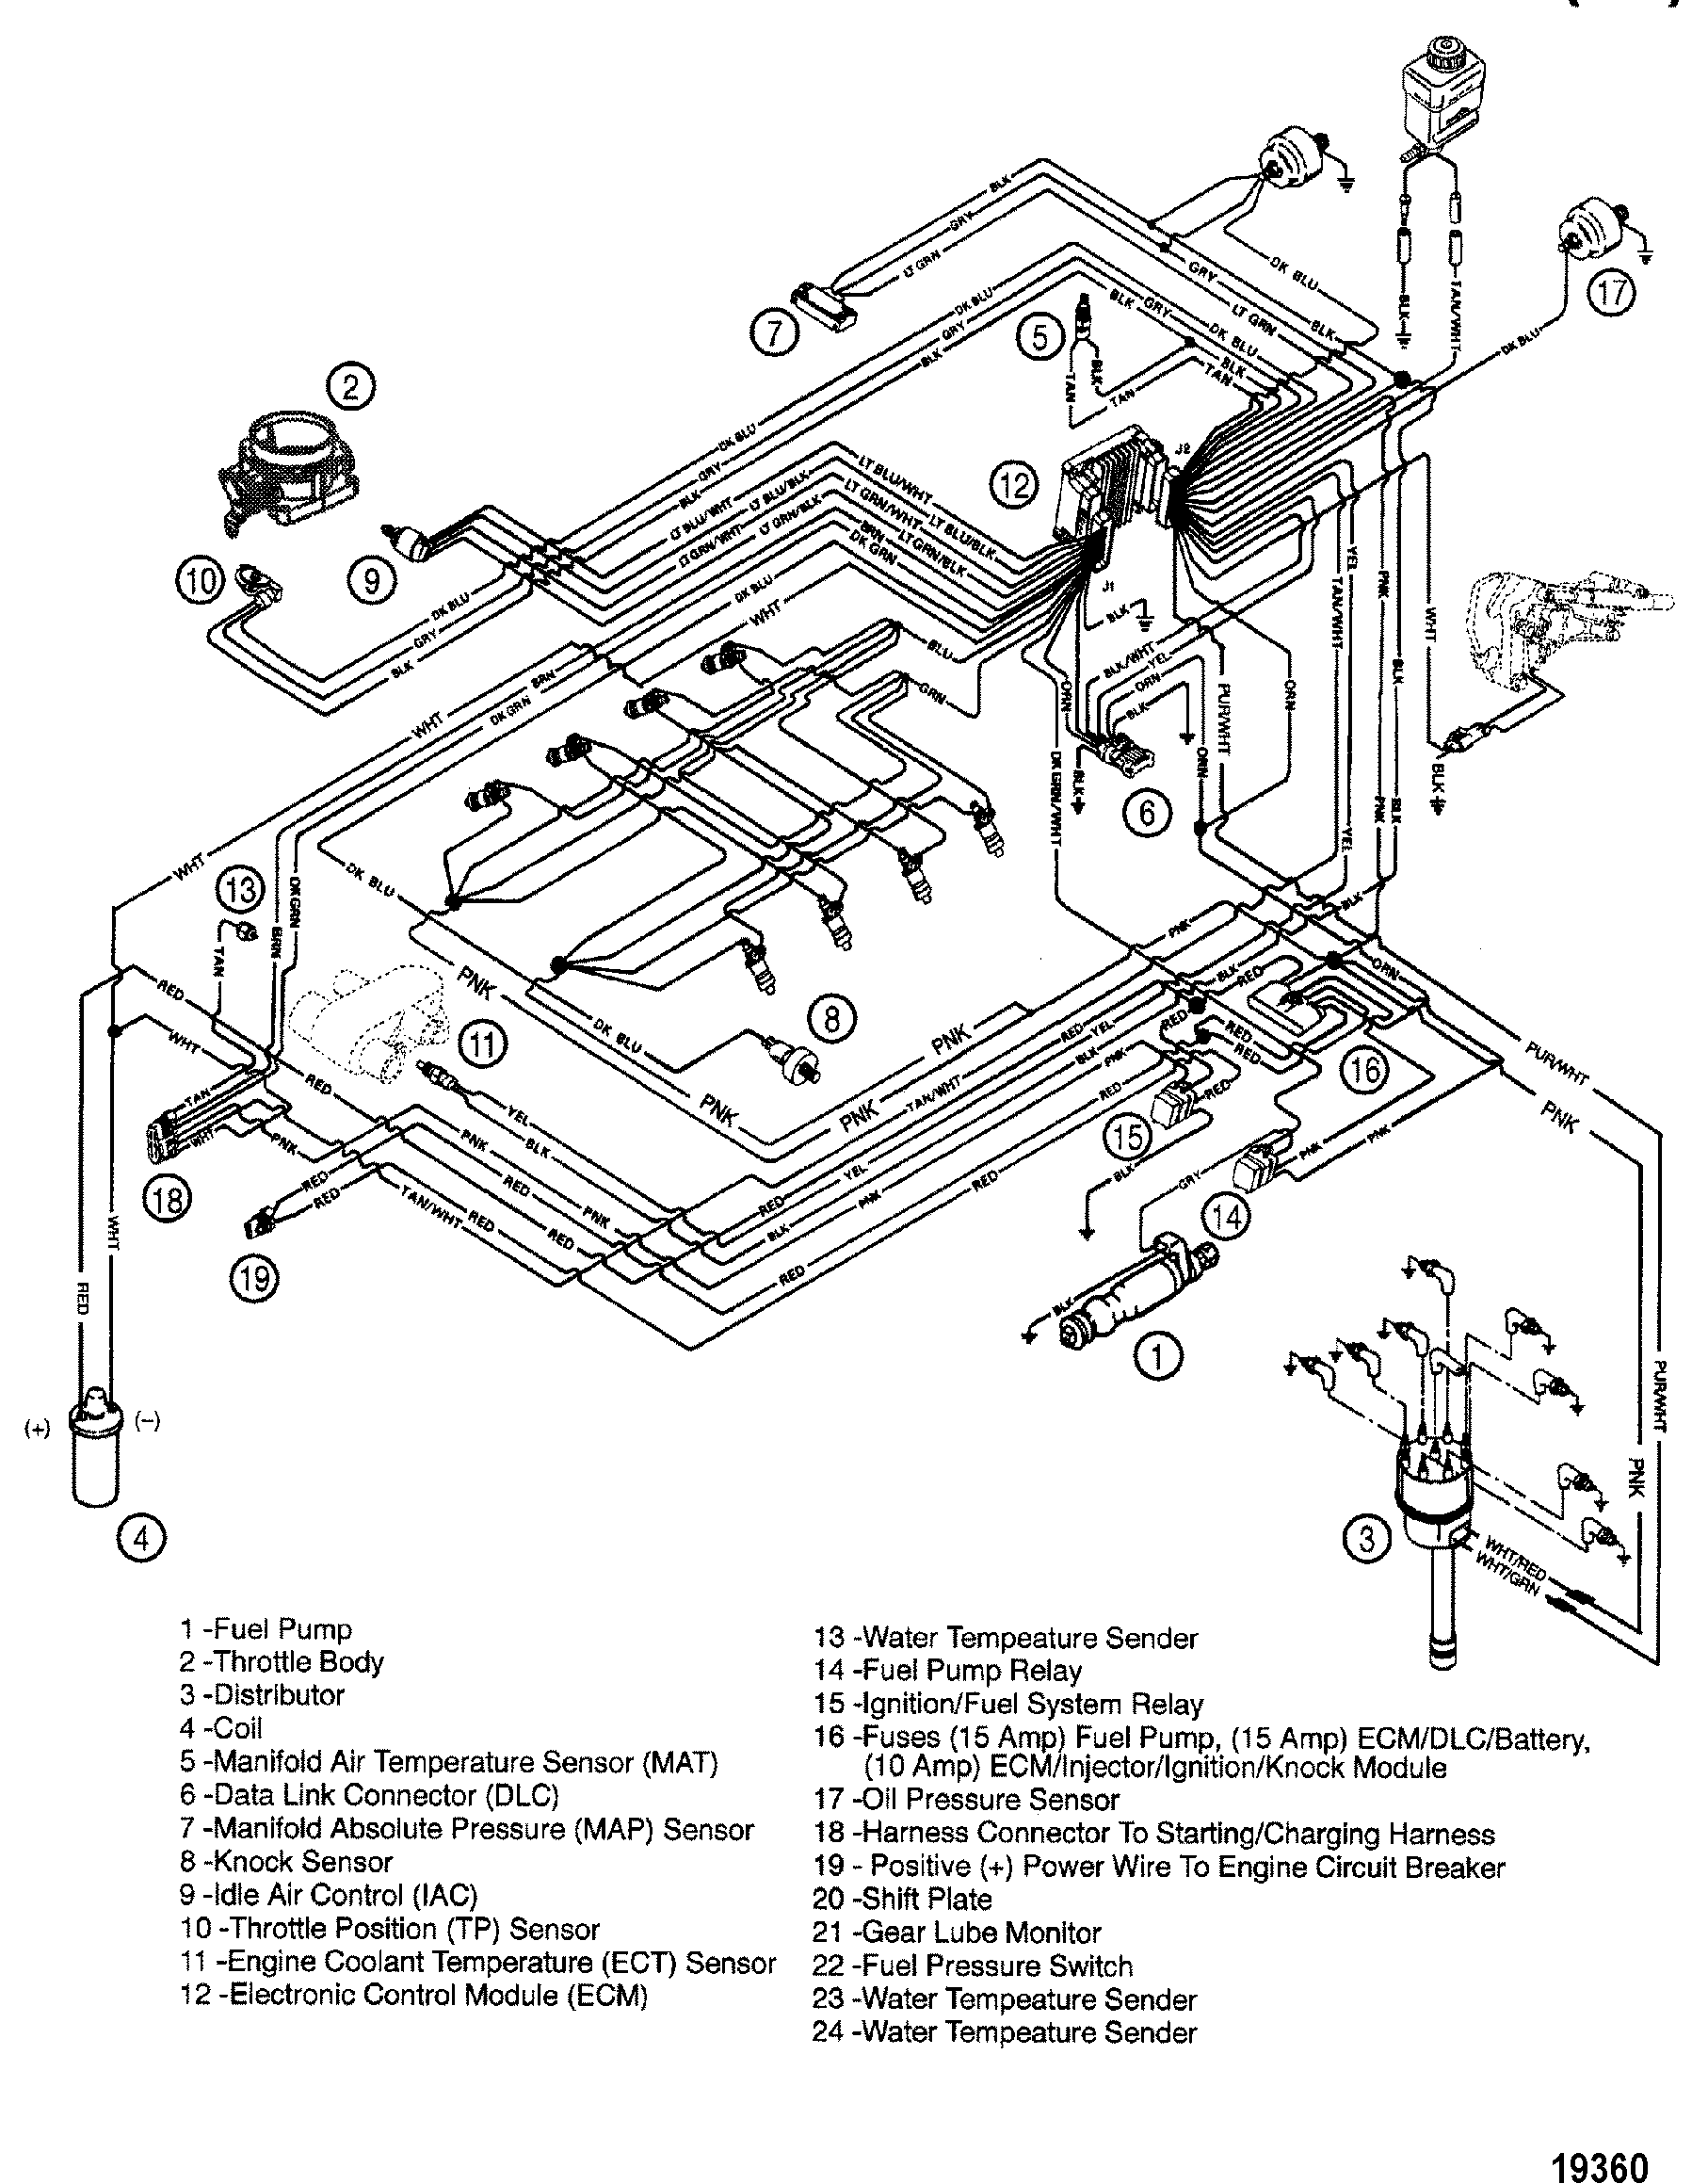 mercruiser engine wiring diagram 5 0 mercruiser engine wiring diagram